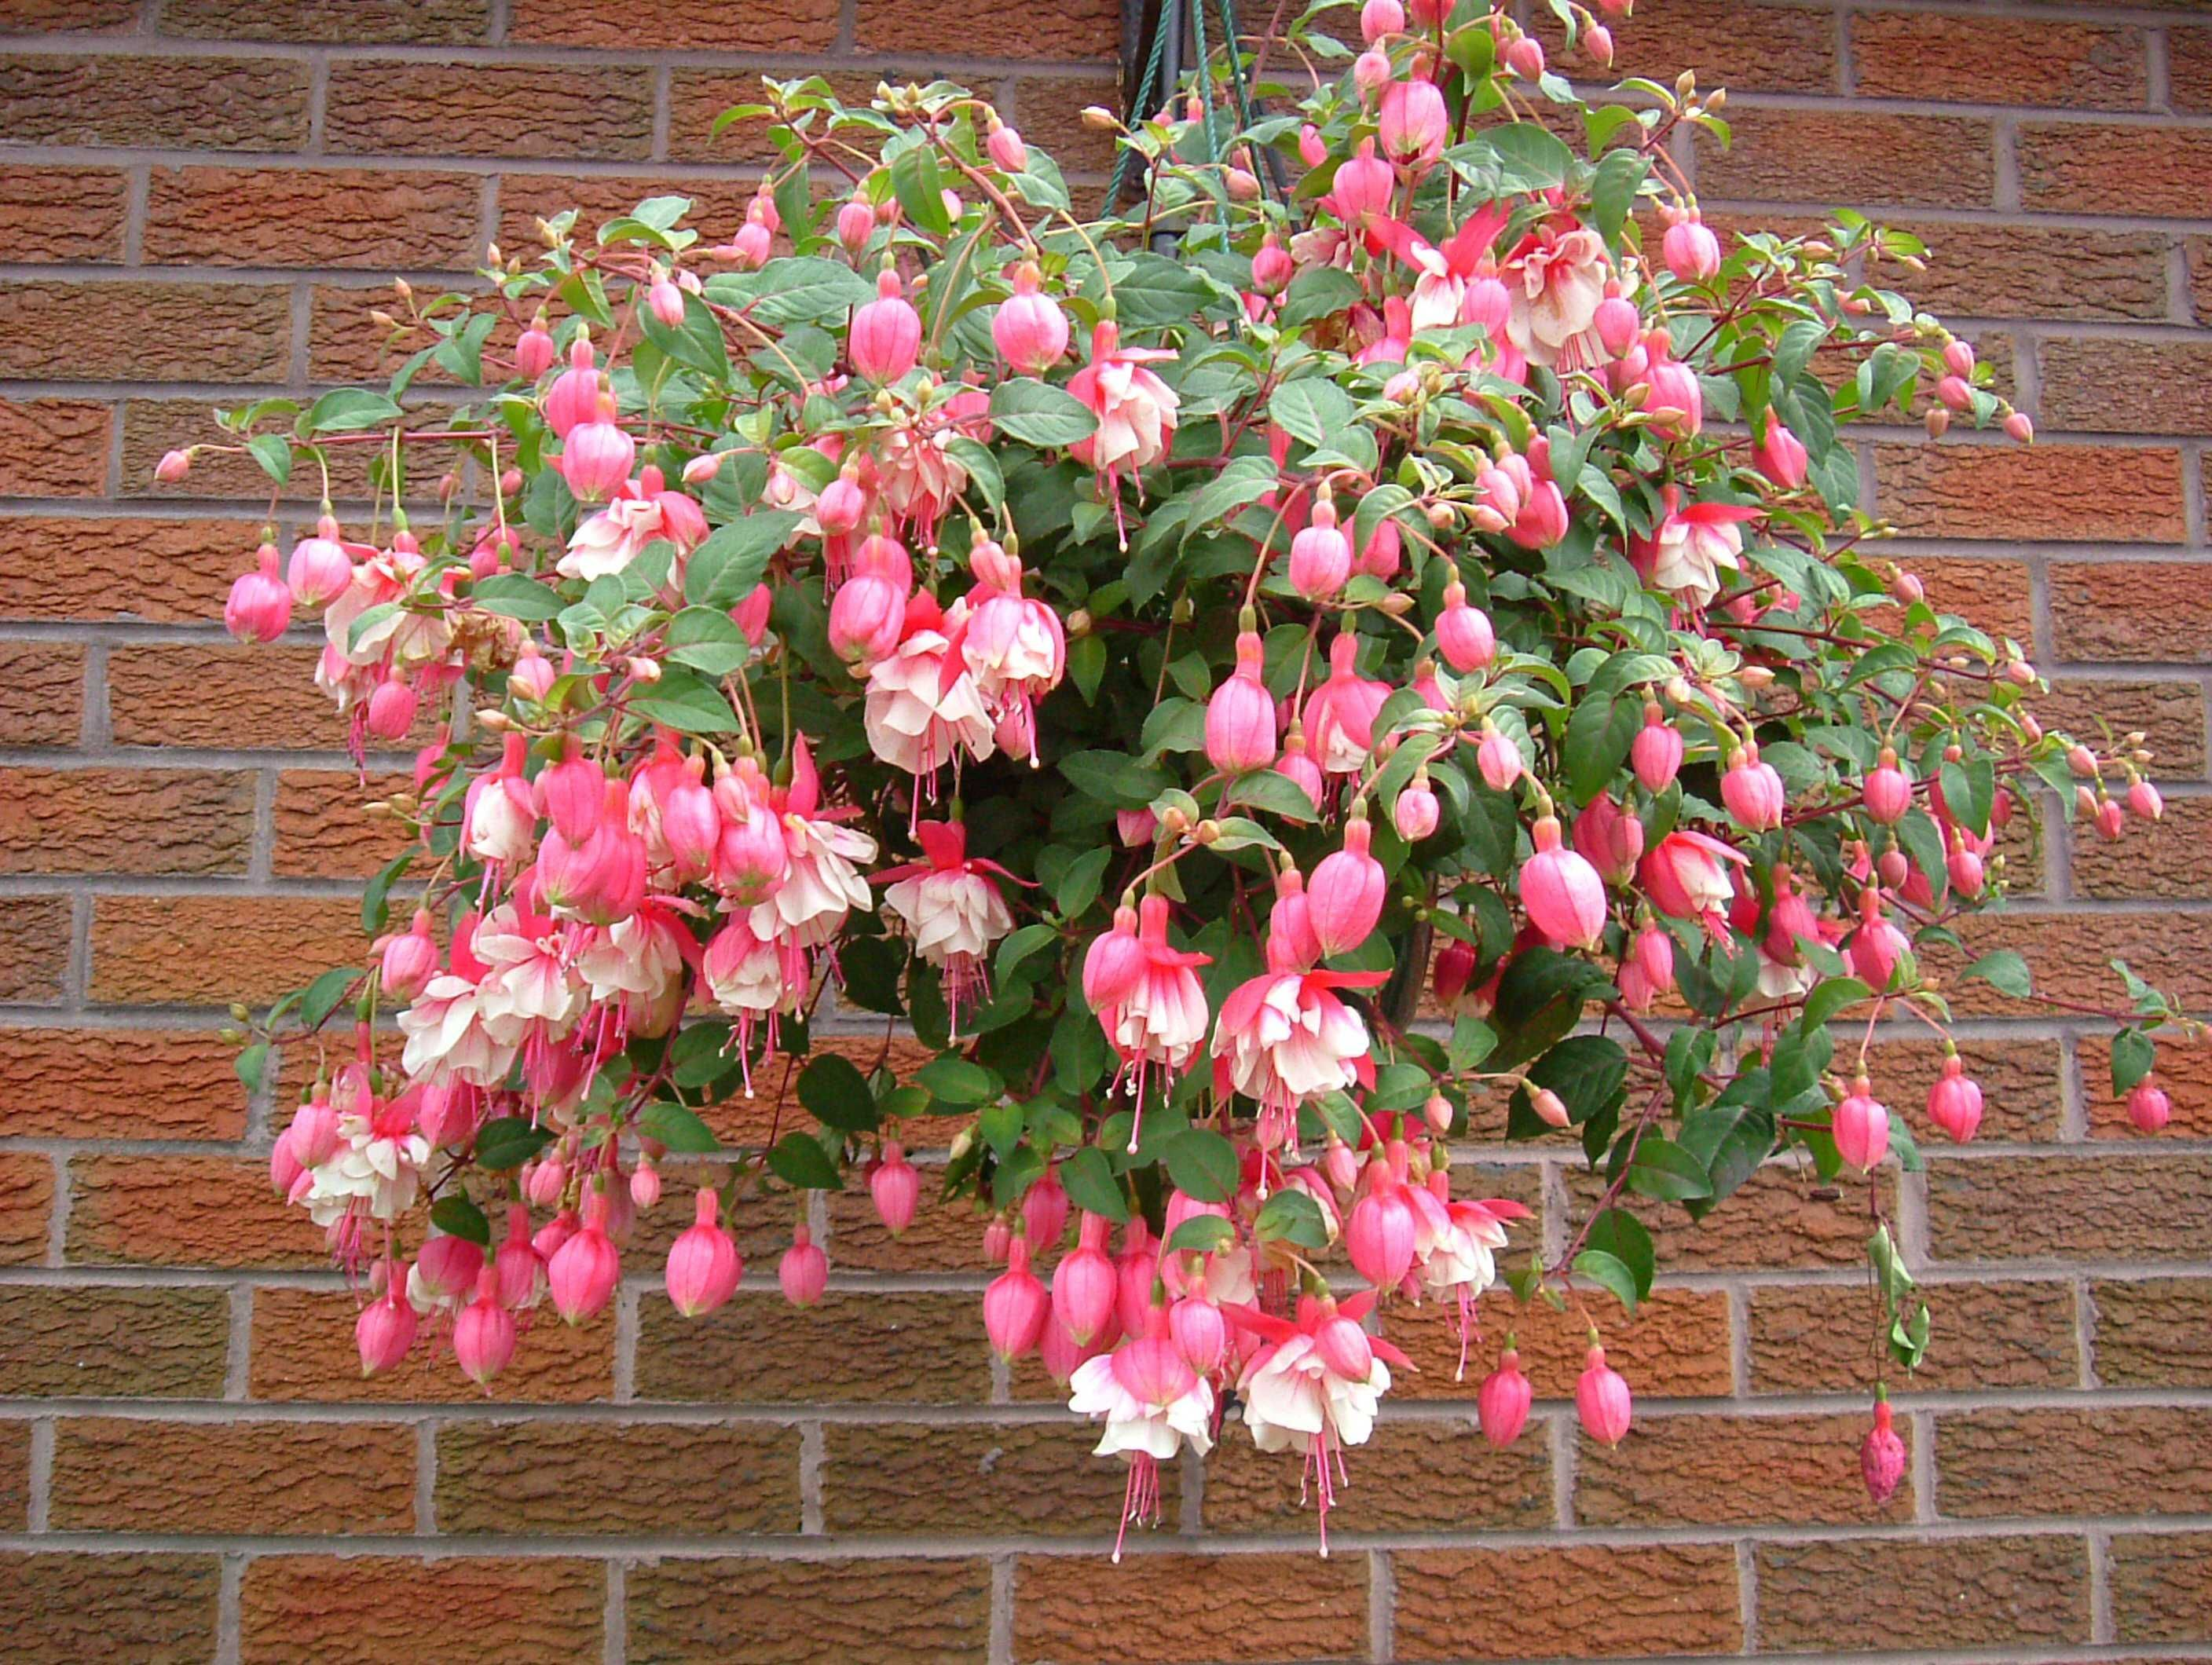 Best flowers for hanging baskets hanging baskets for What are the best flowers